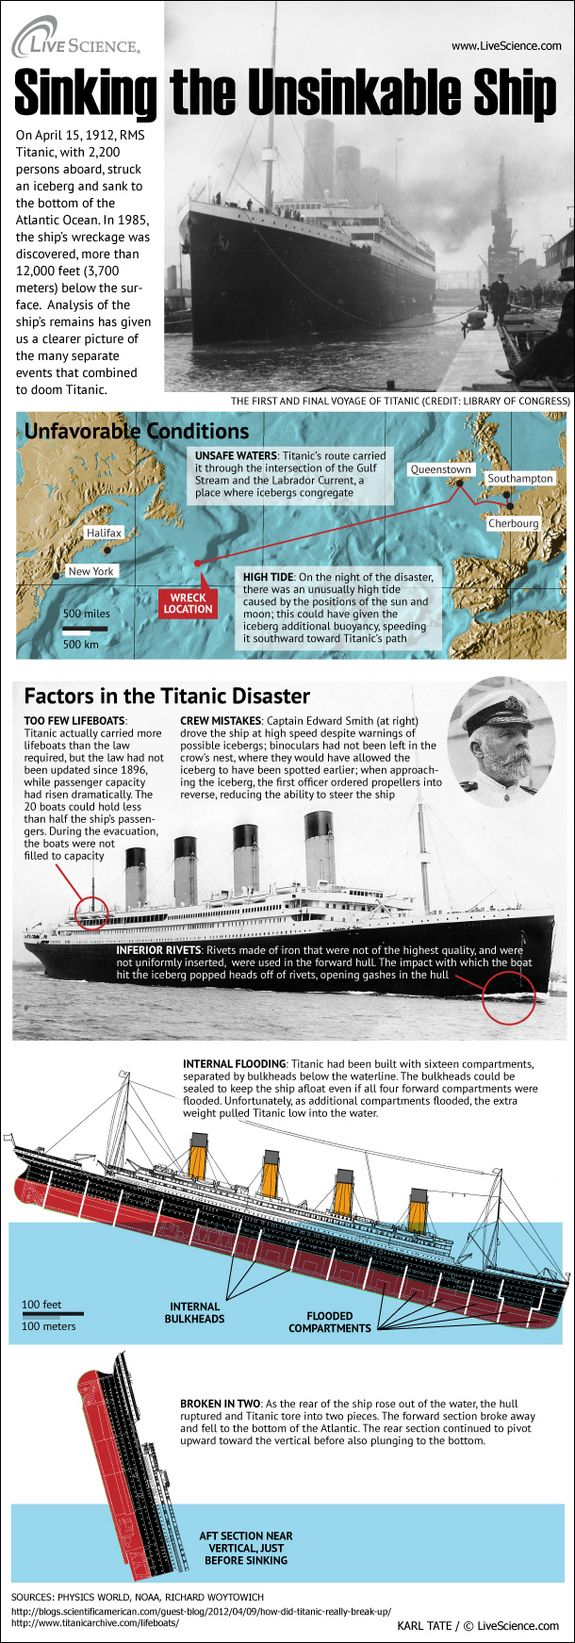 Infographic: What Brought Down the Titanic? A remarkable variety of elements came together to sink the famed steamship Titanic.